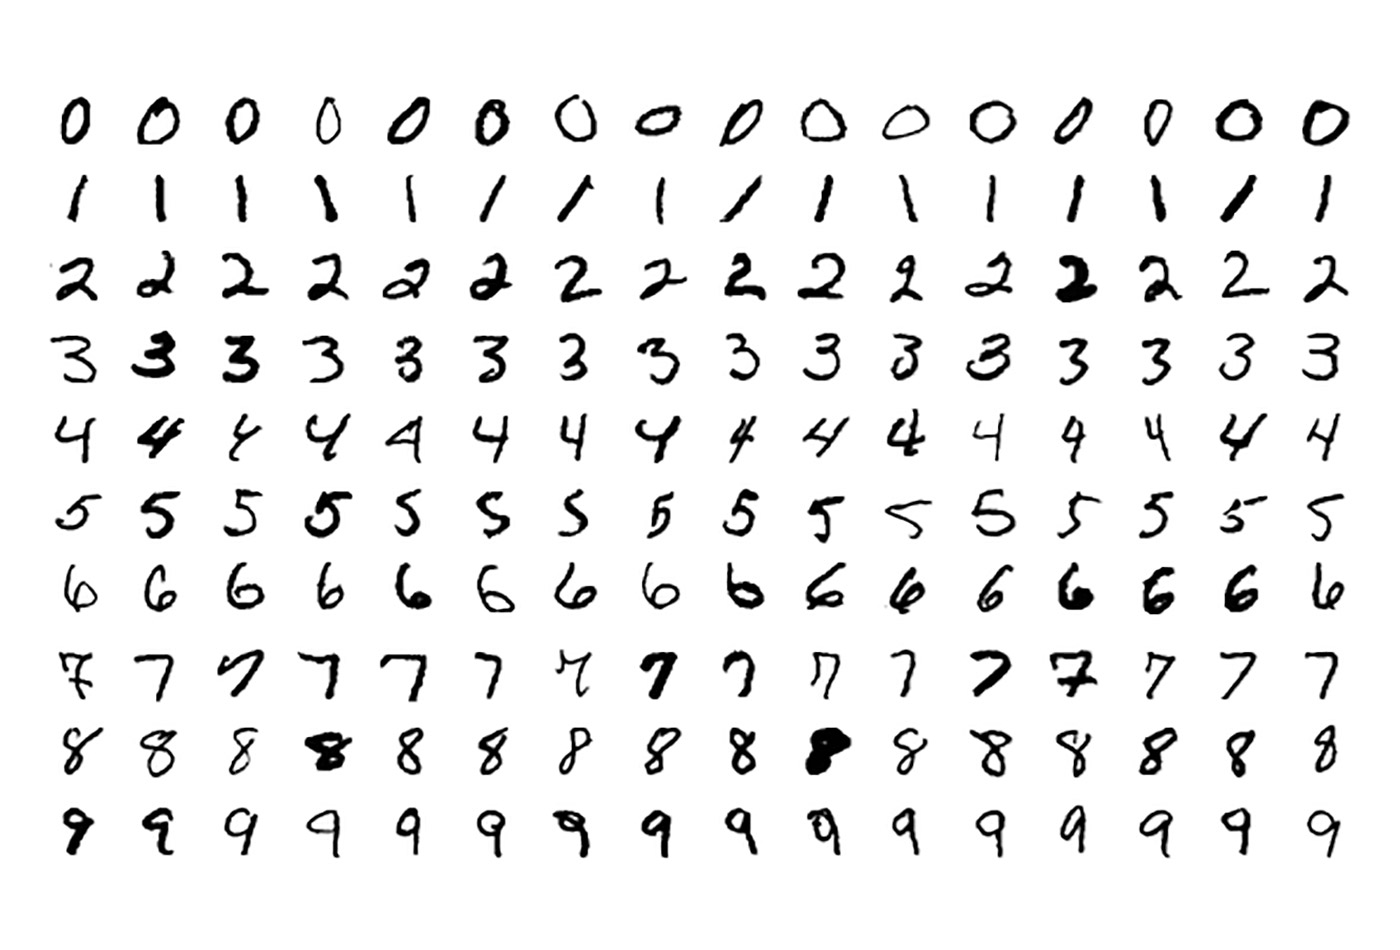 Samples from the MNIST test data set